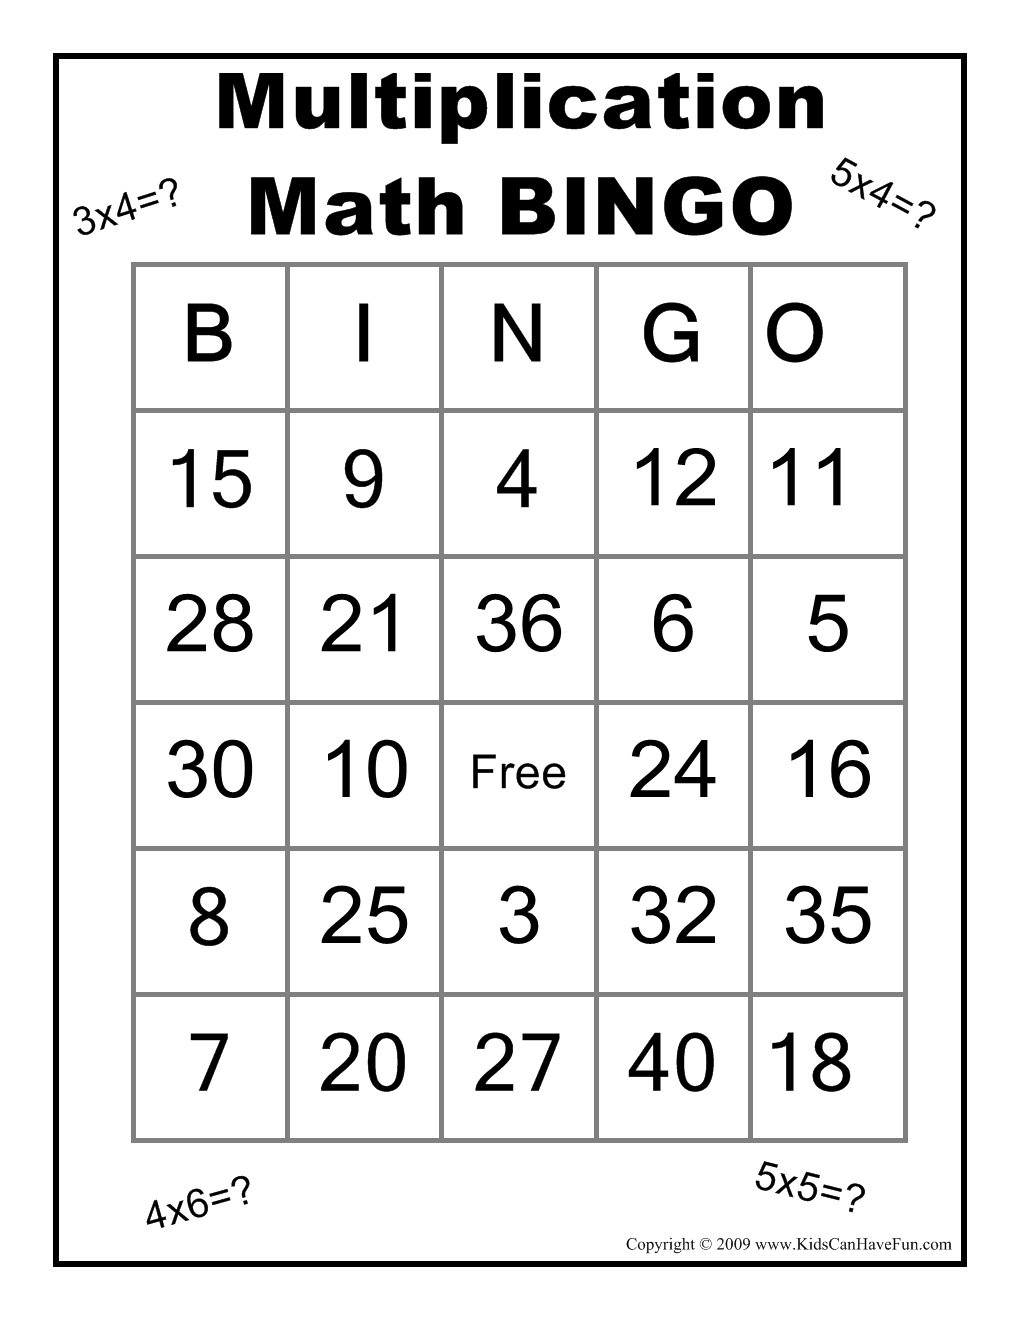 Multiplication Math BINGO Game http://www.kidscanhavefun.com/school ...